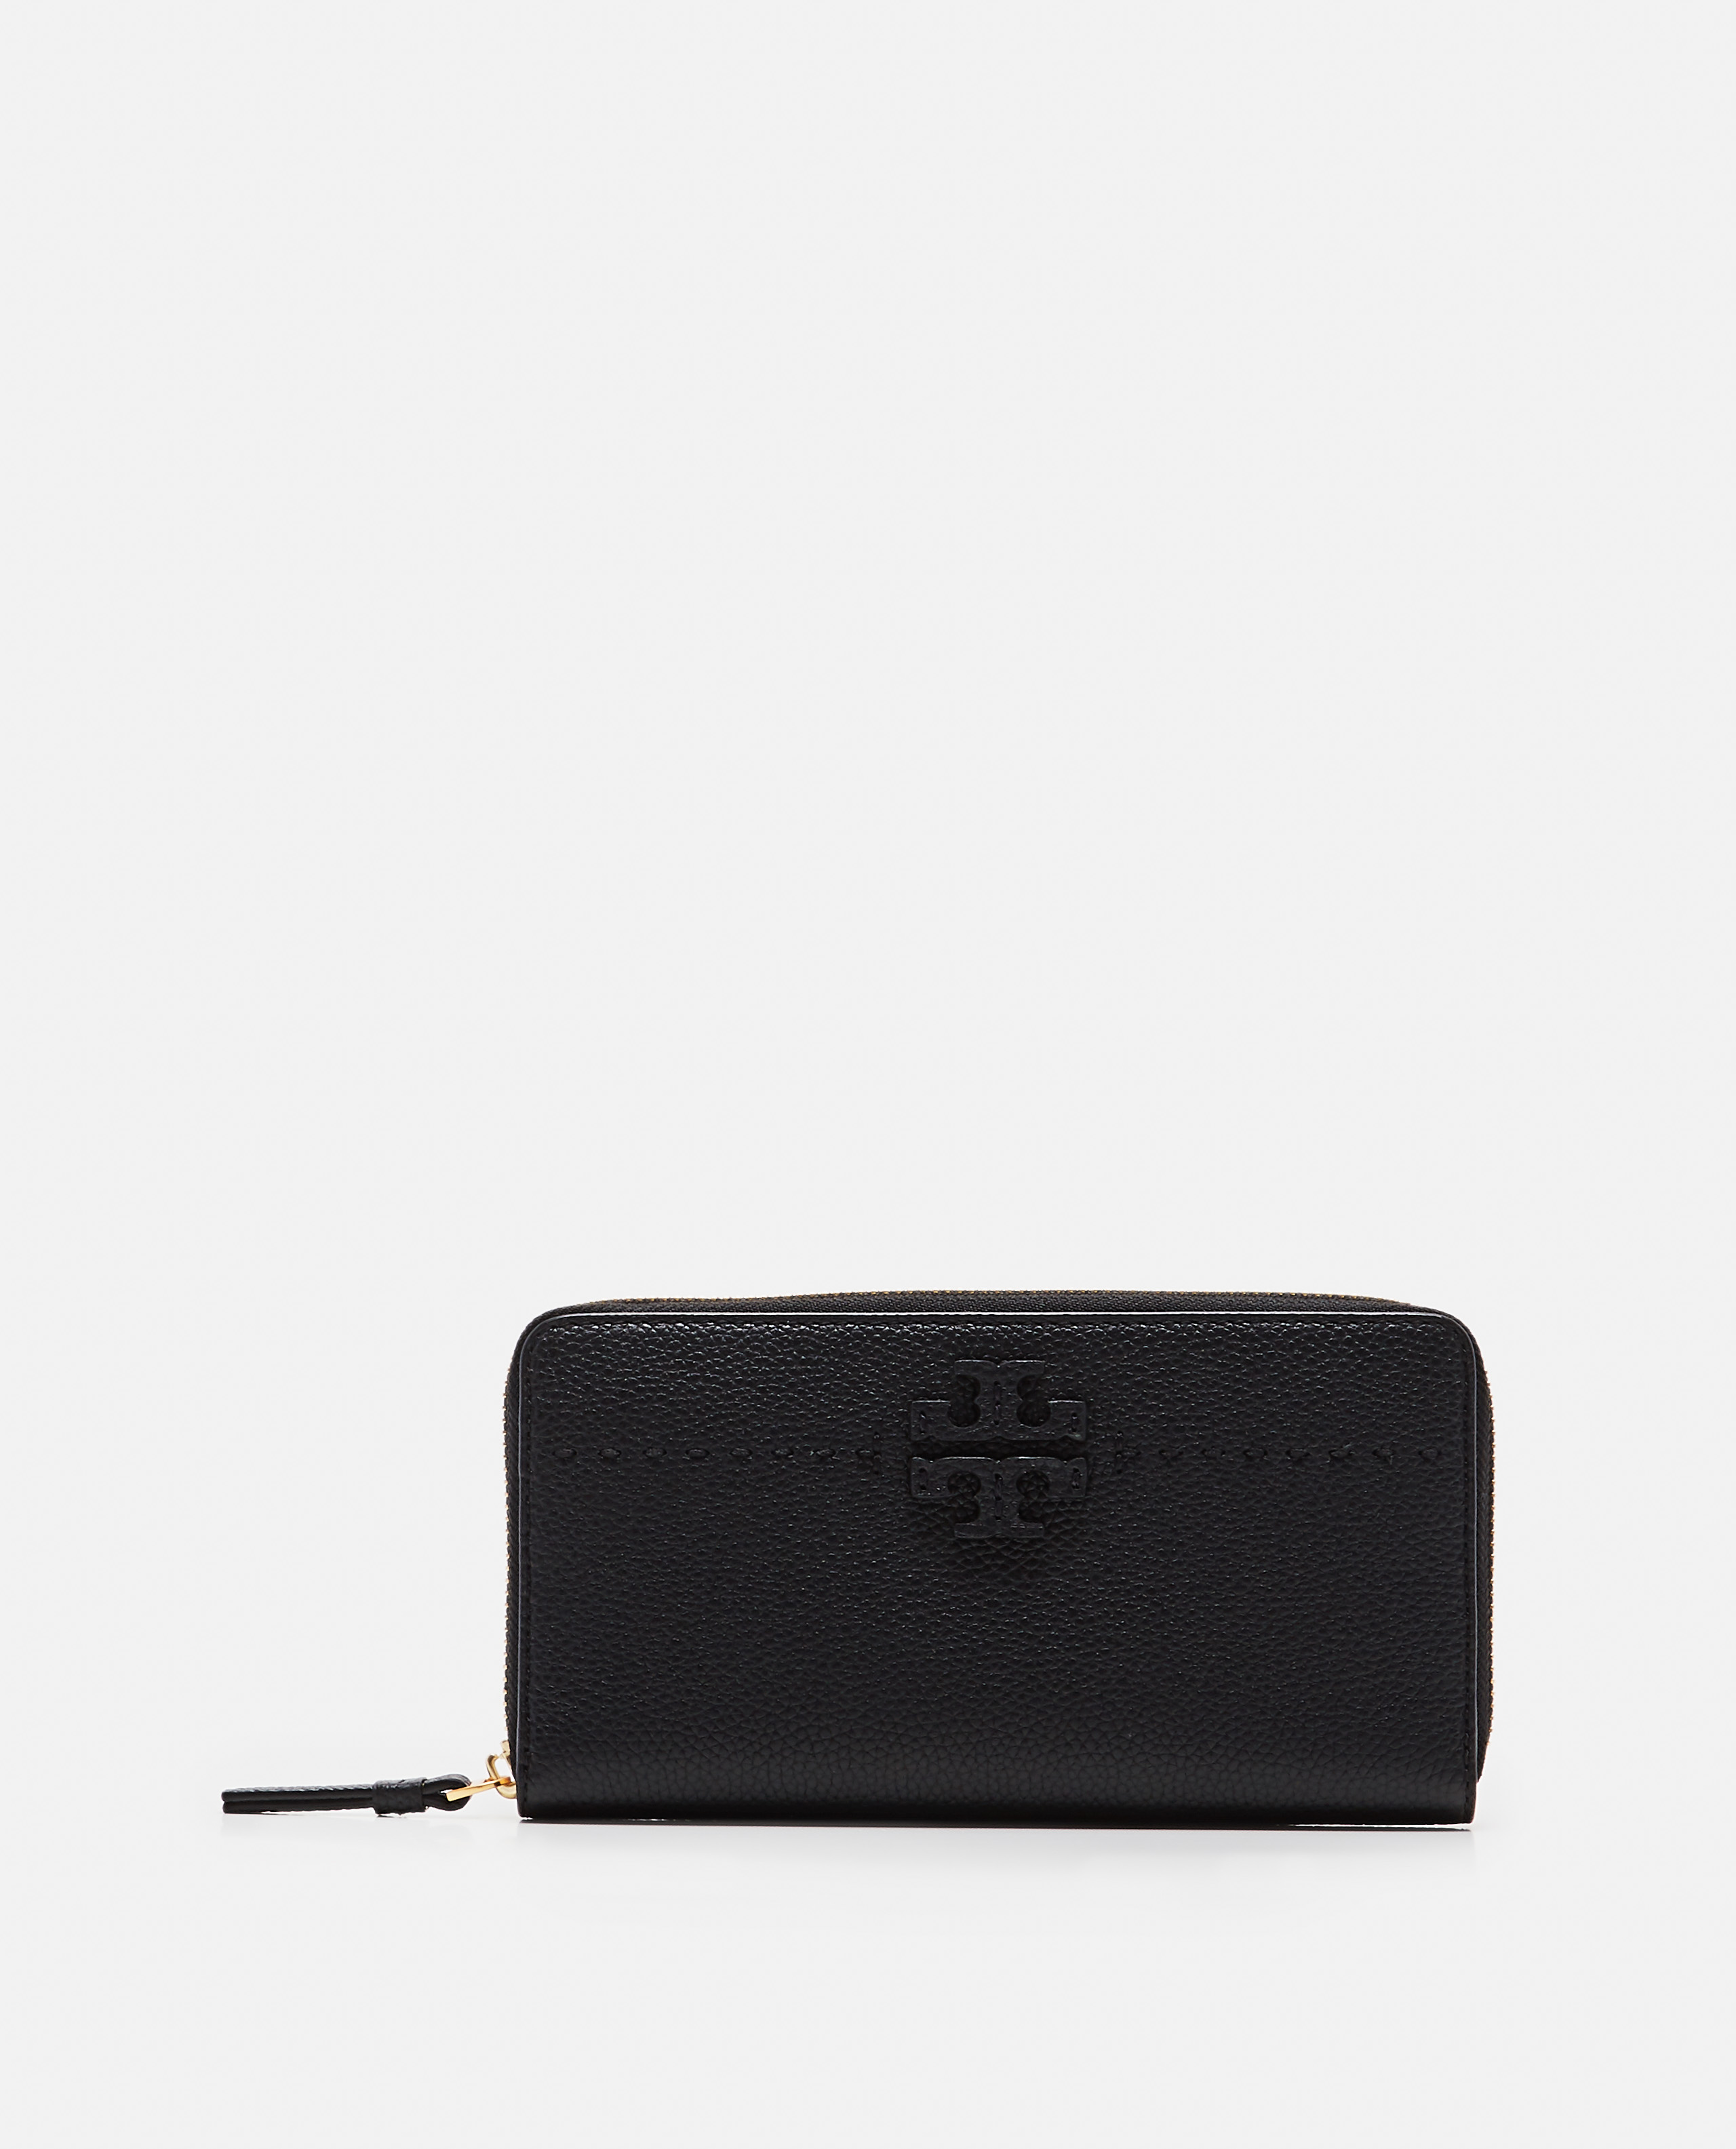 Continental McGraw leather wallet